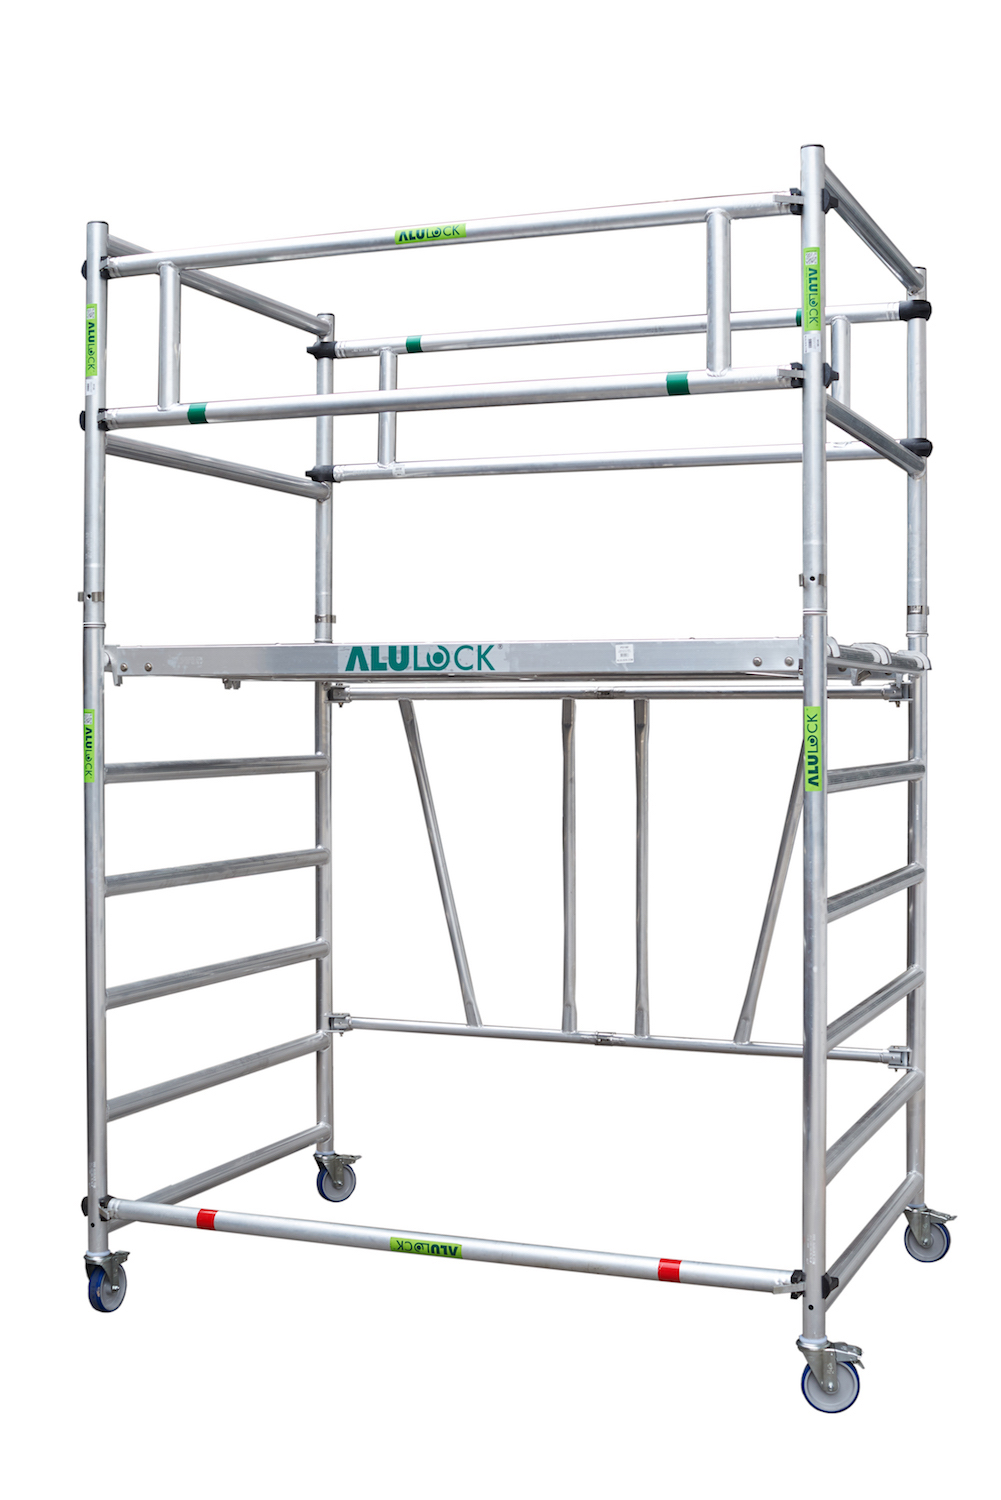 Folding Scaffold 135 x 180 cm. Working height: 3.65 m. with guardrailing